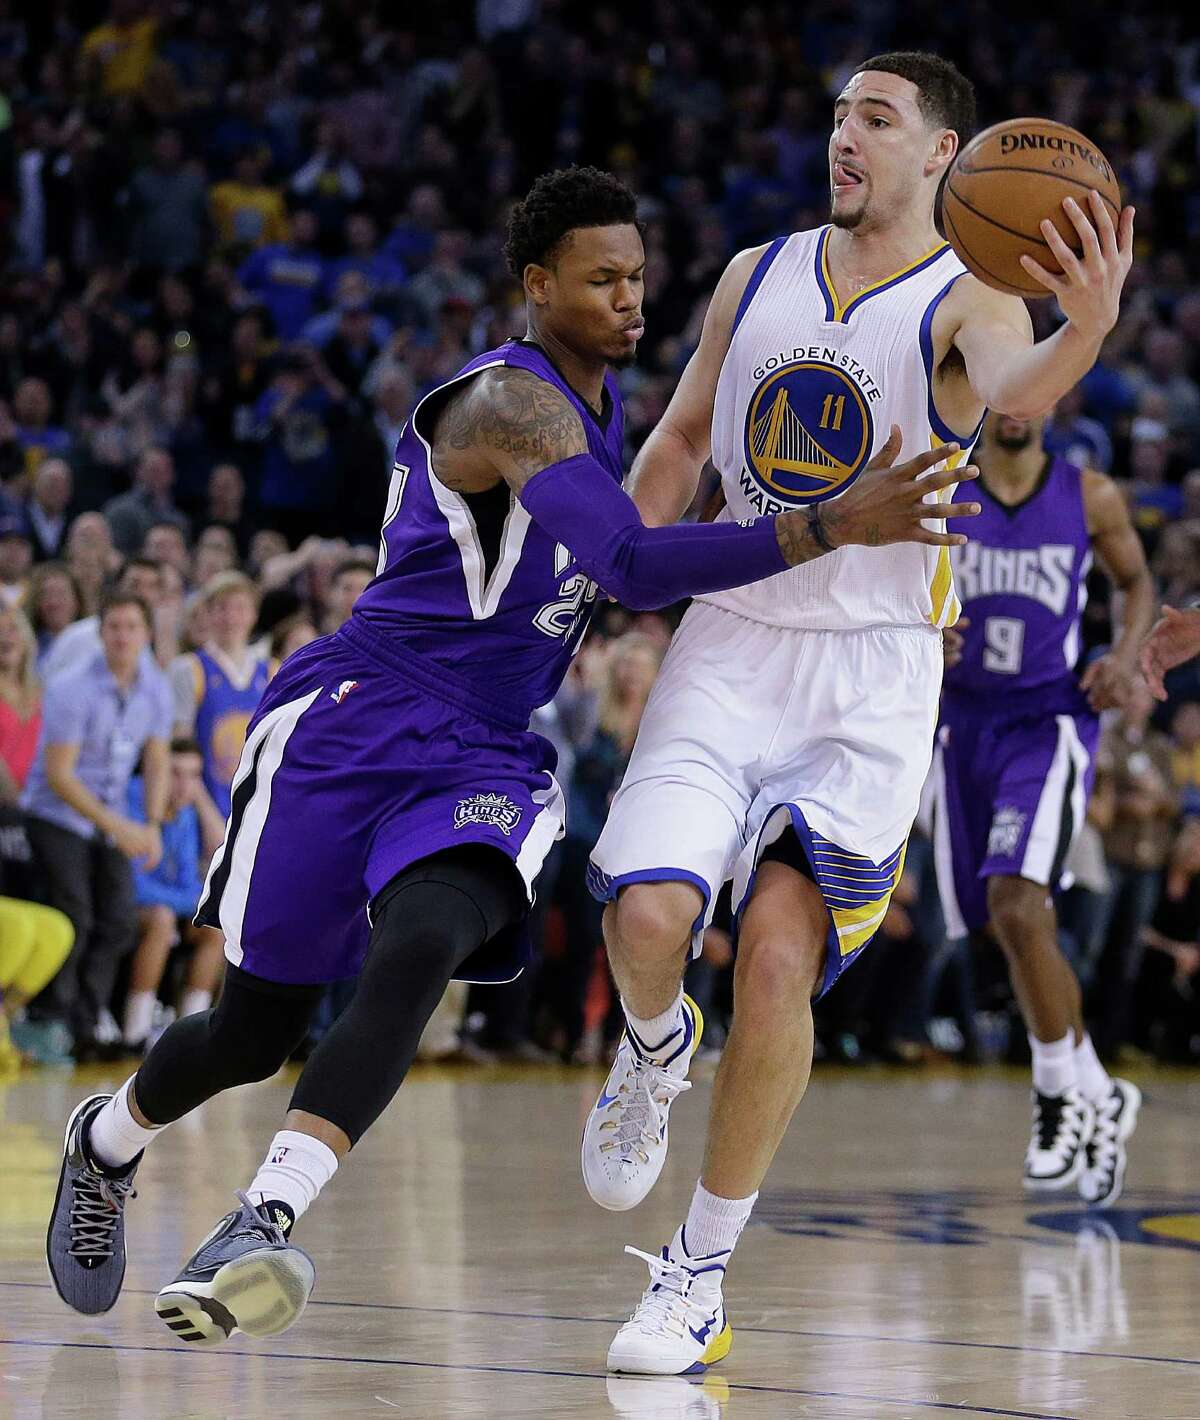 The Warriors' Klay Thompson (right) passes around the Kings' Ben McLemore during the historic third quarter.